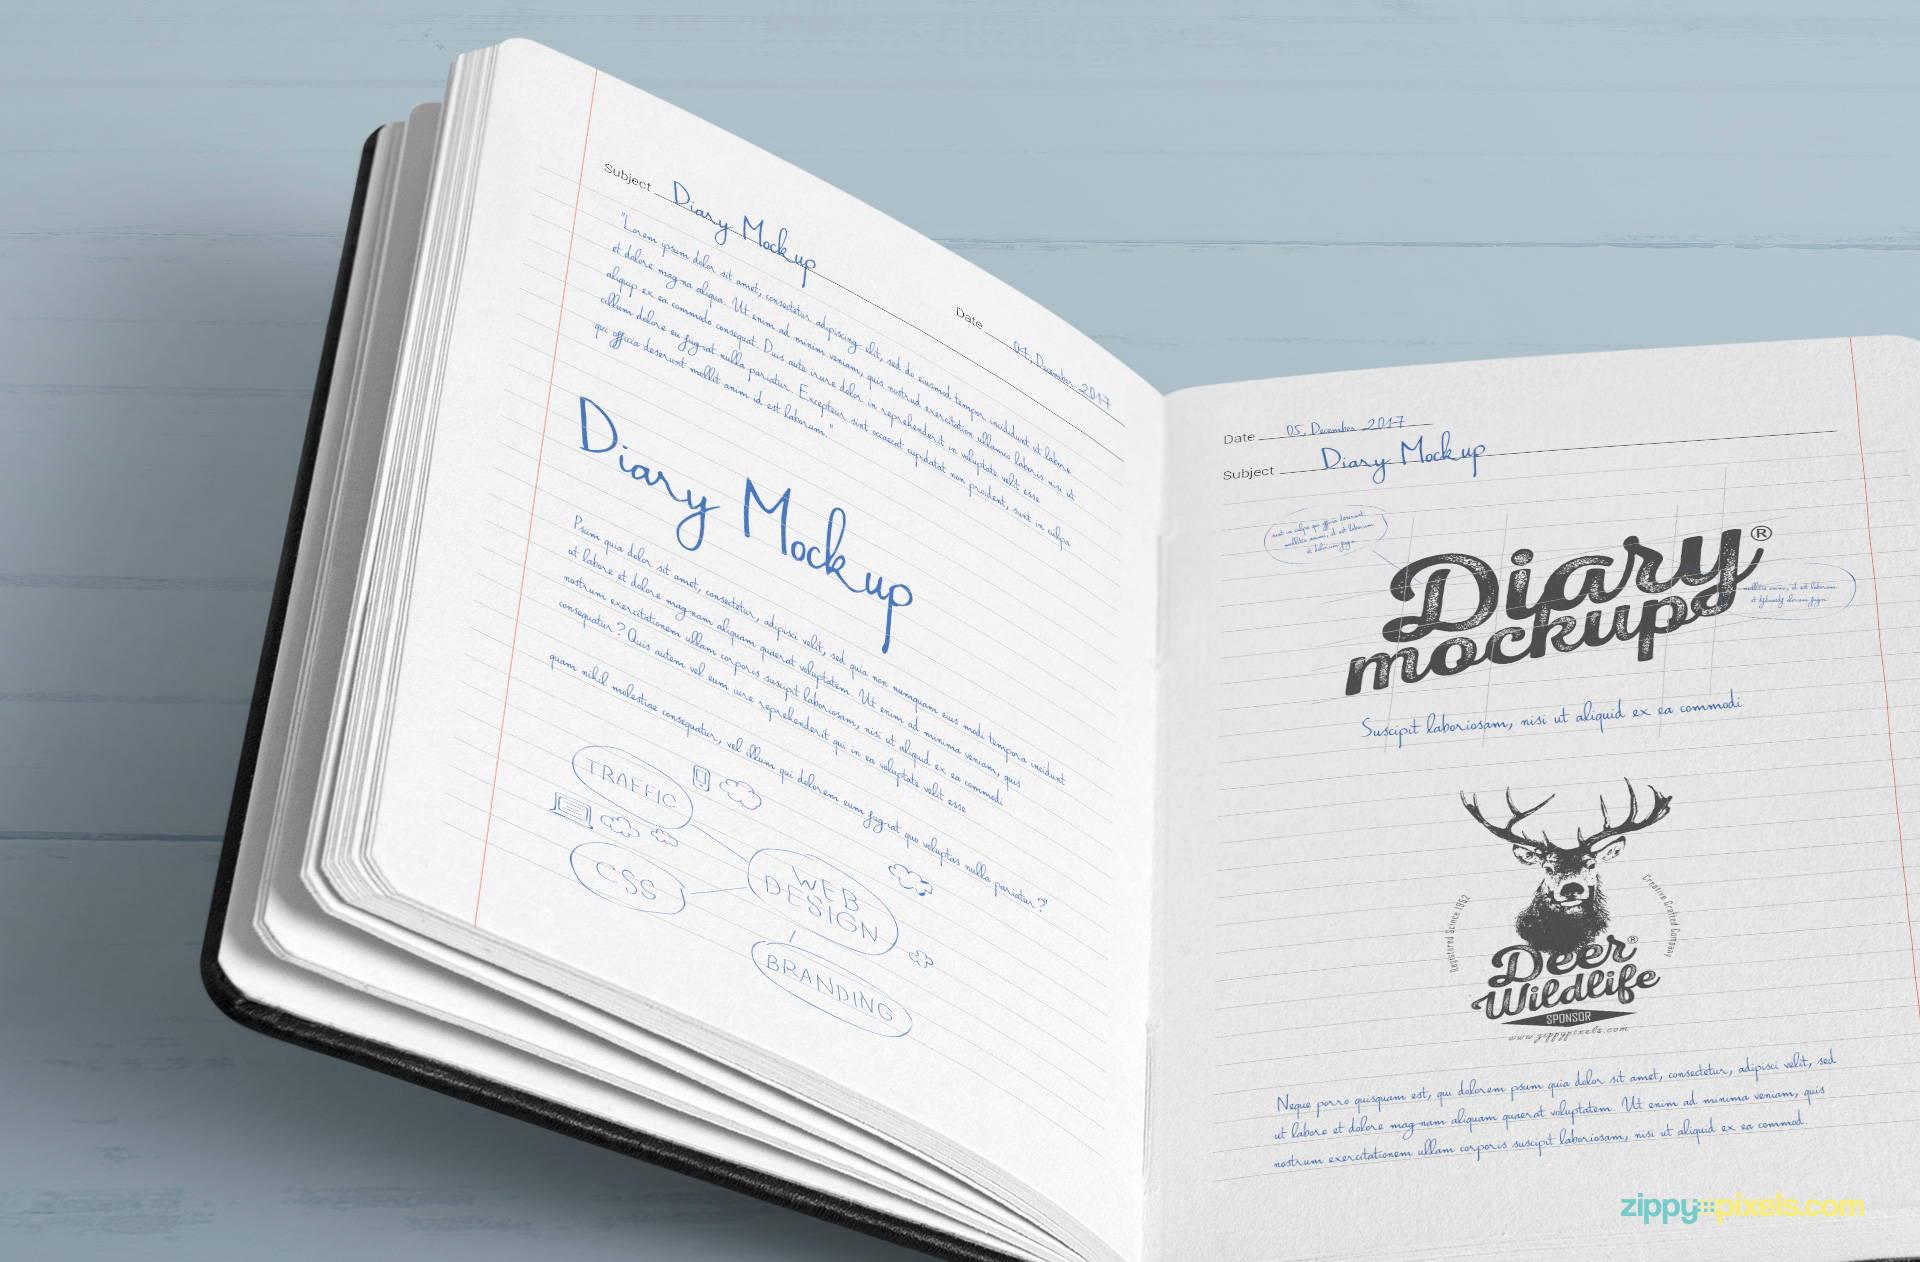 Changeable color and design of stack and inner pages of the diary mockup.